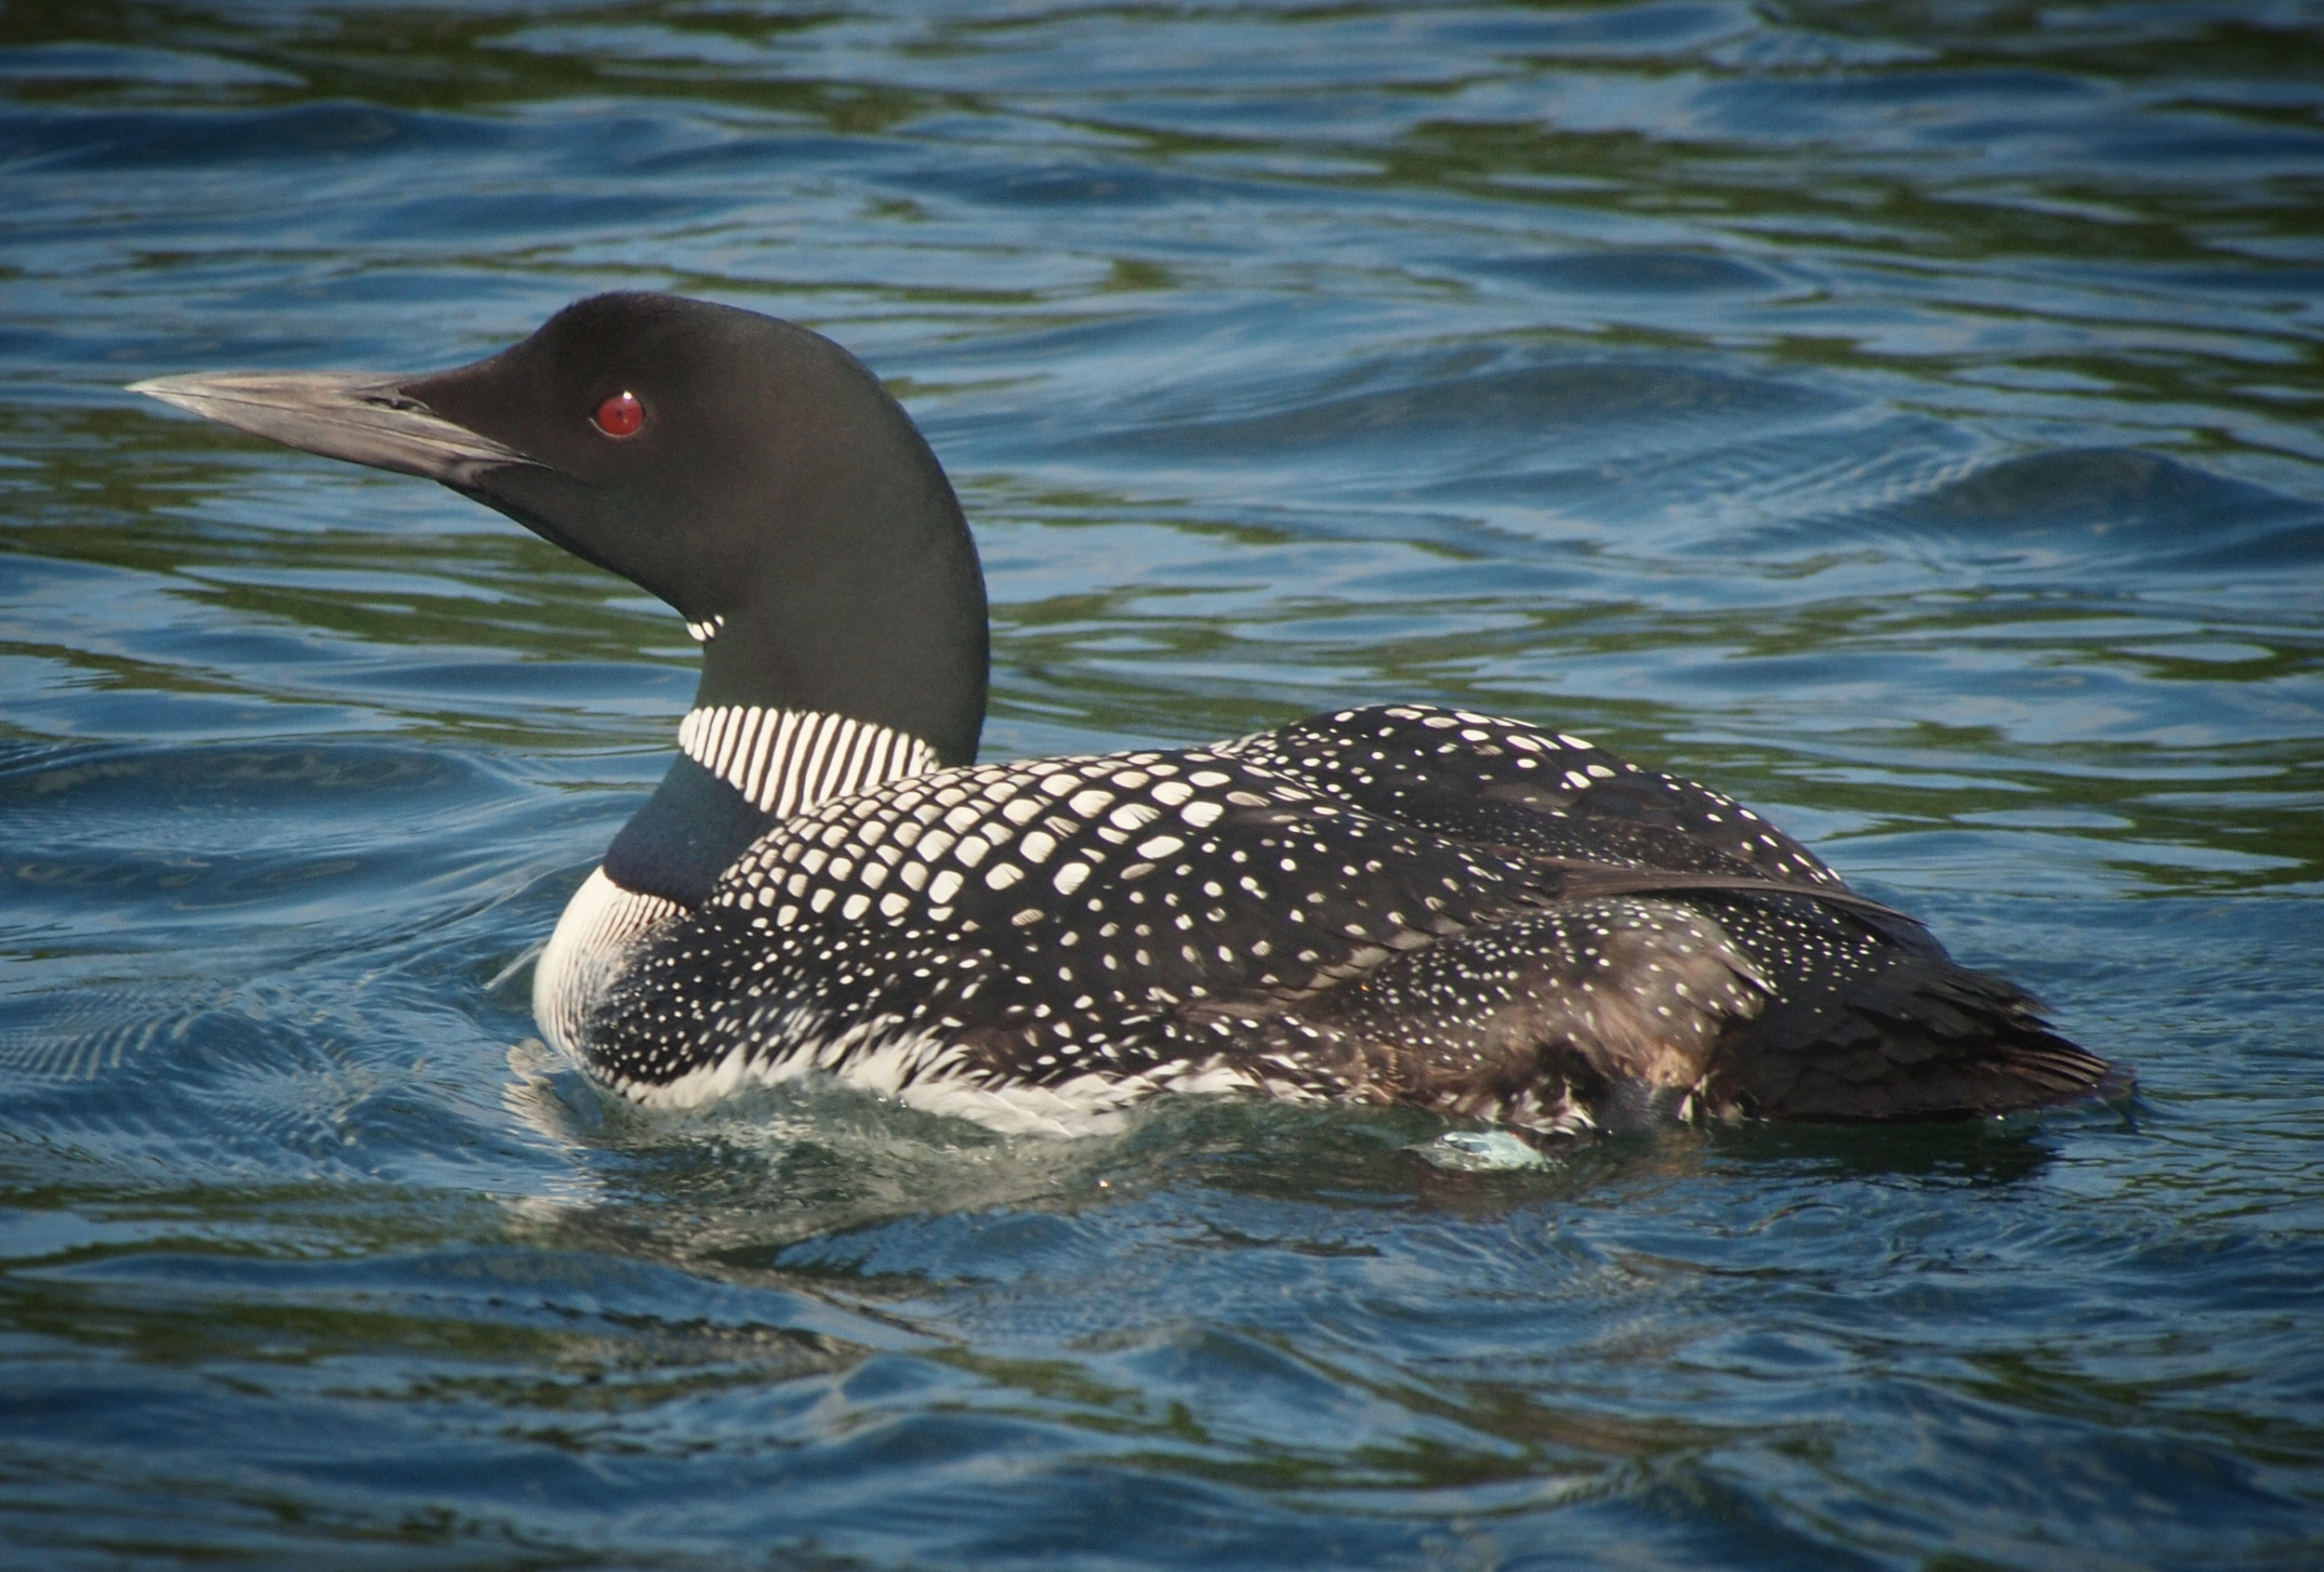 Listen to the sounds of the loons' calls! Two pairs of loons call Big Blake Lake home!